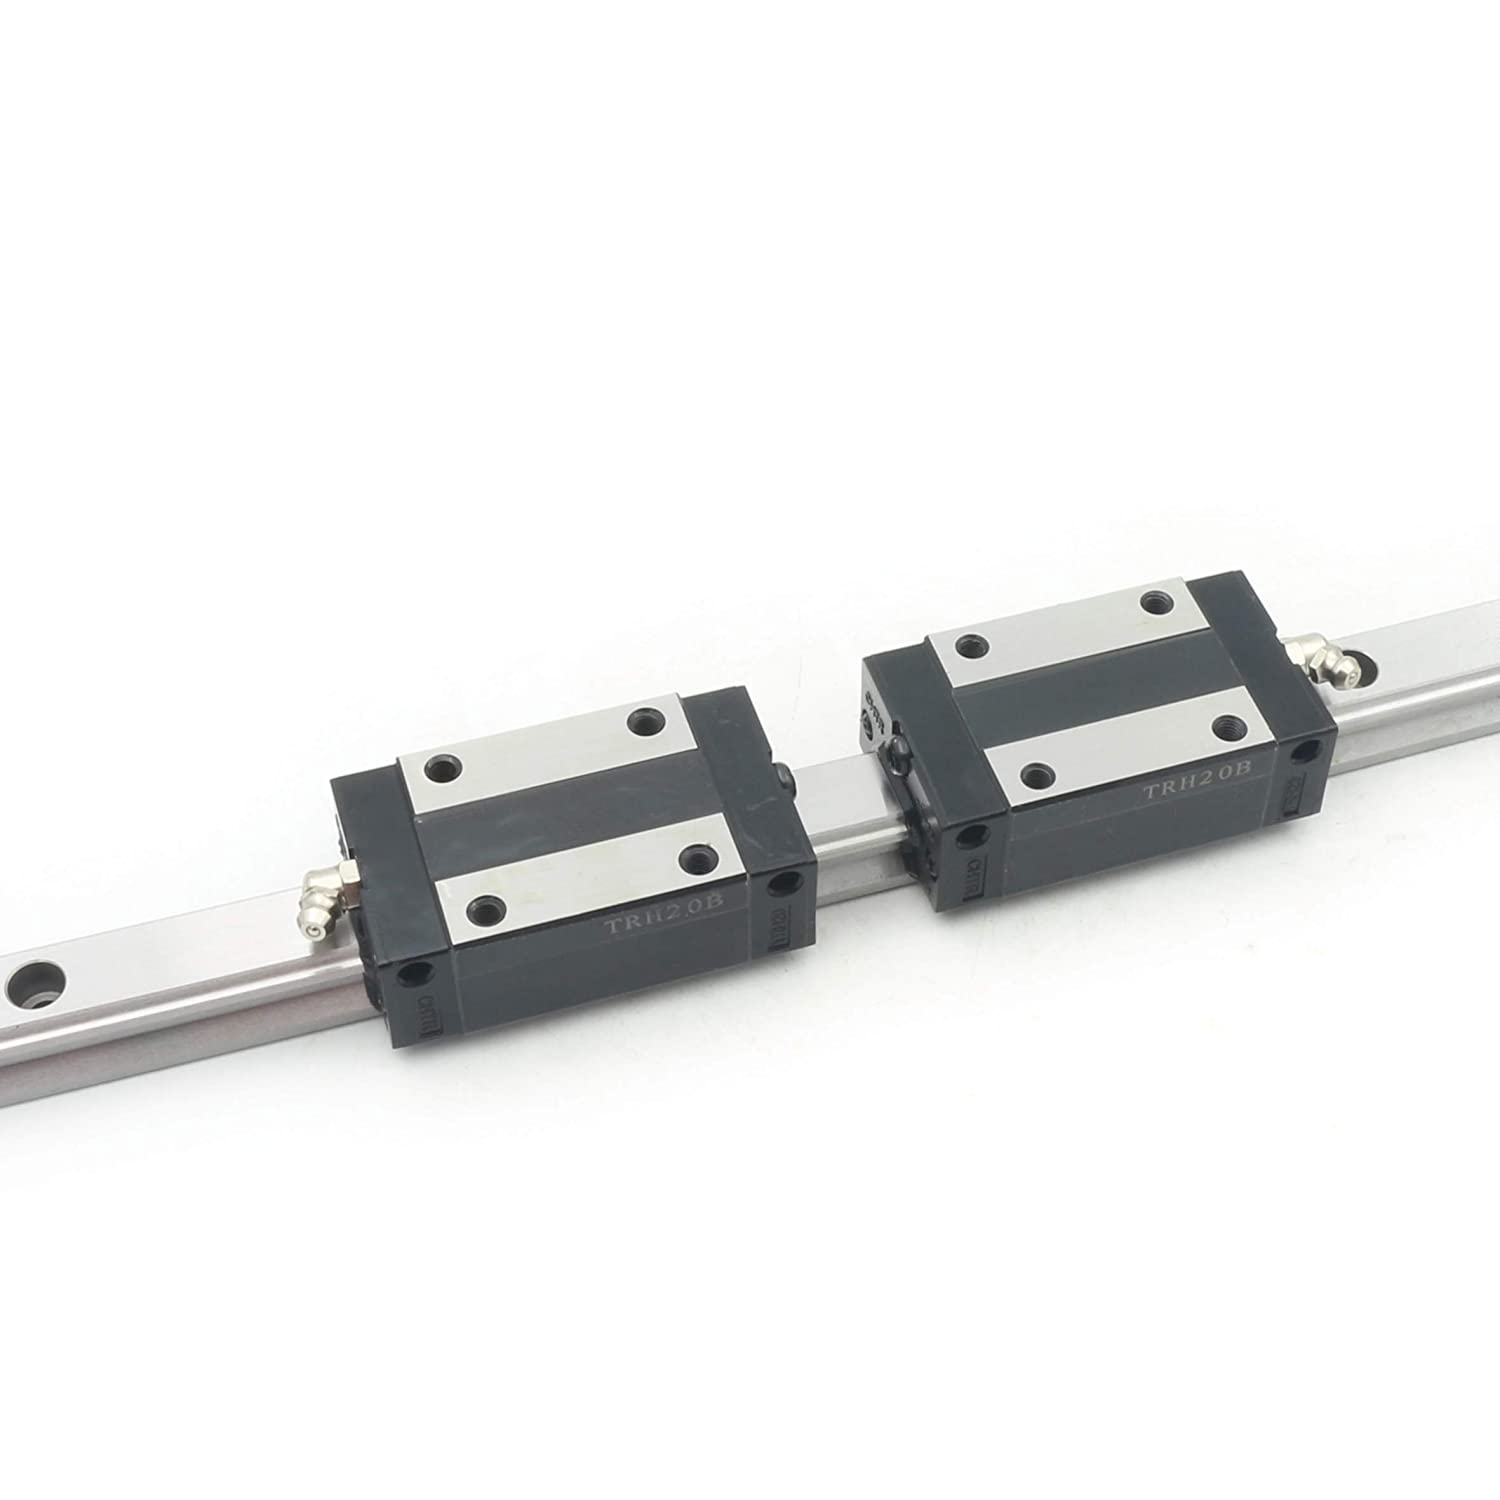 【US Stock】TRH20 Square Linear Guide Rail 400mm for CNC Machine+TRH20B Carriage